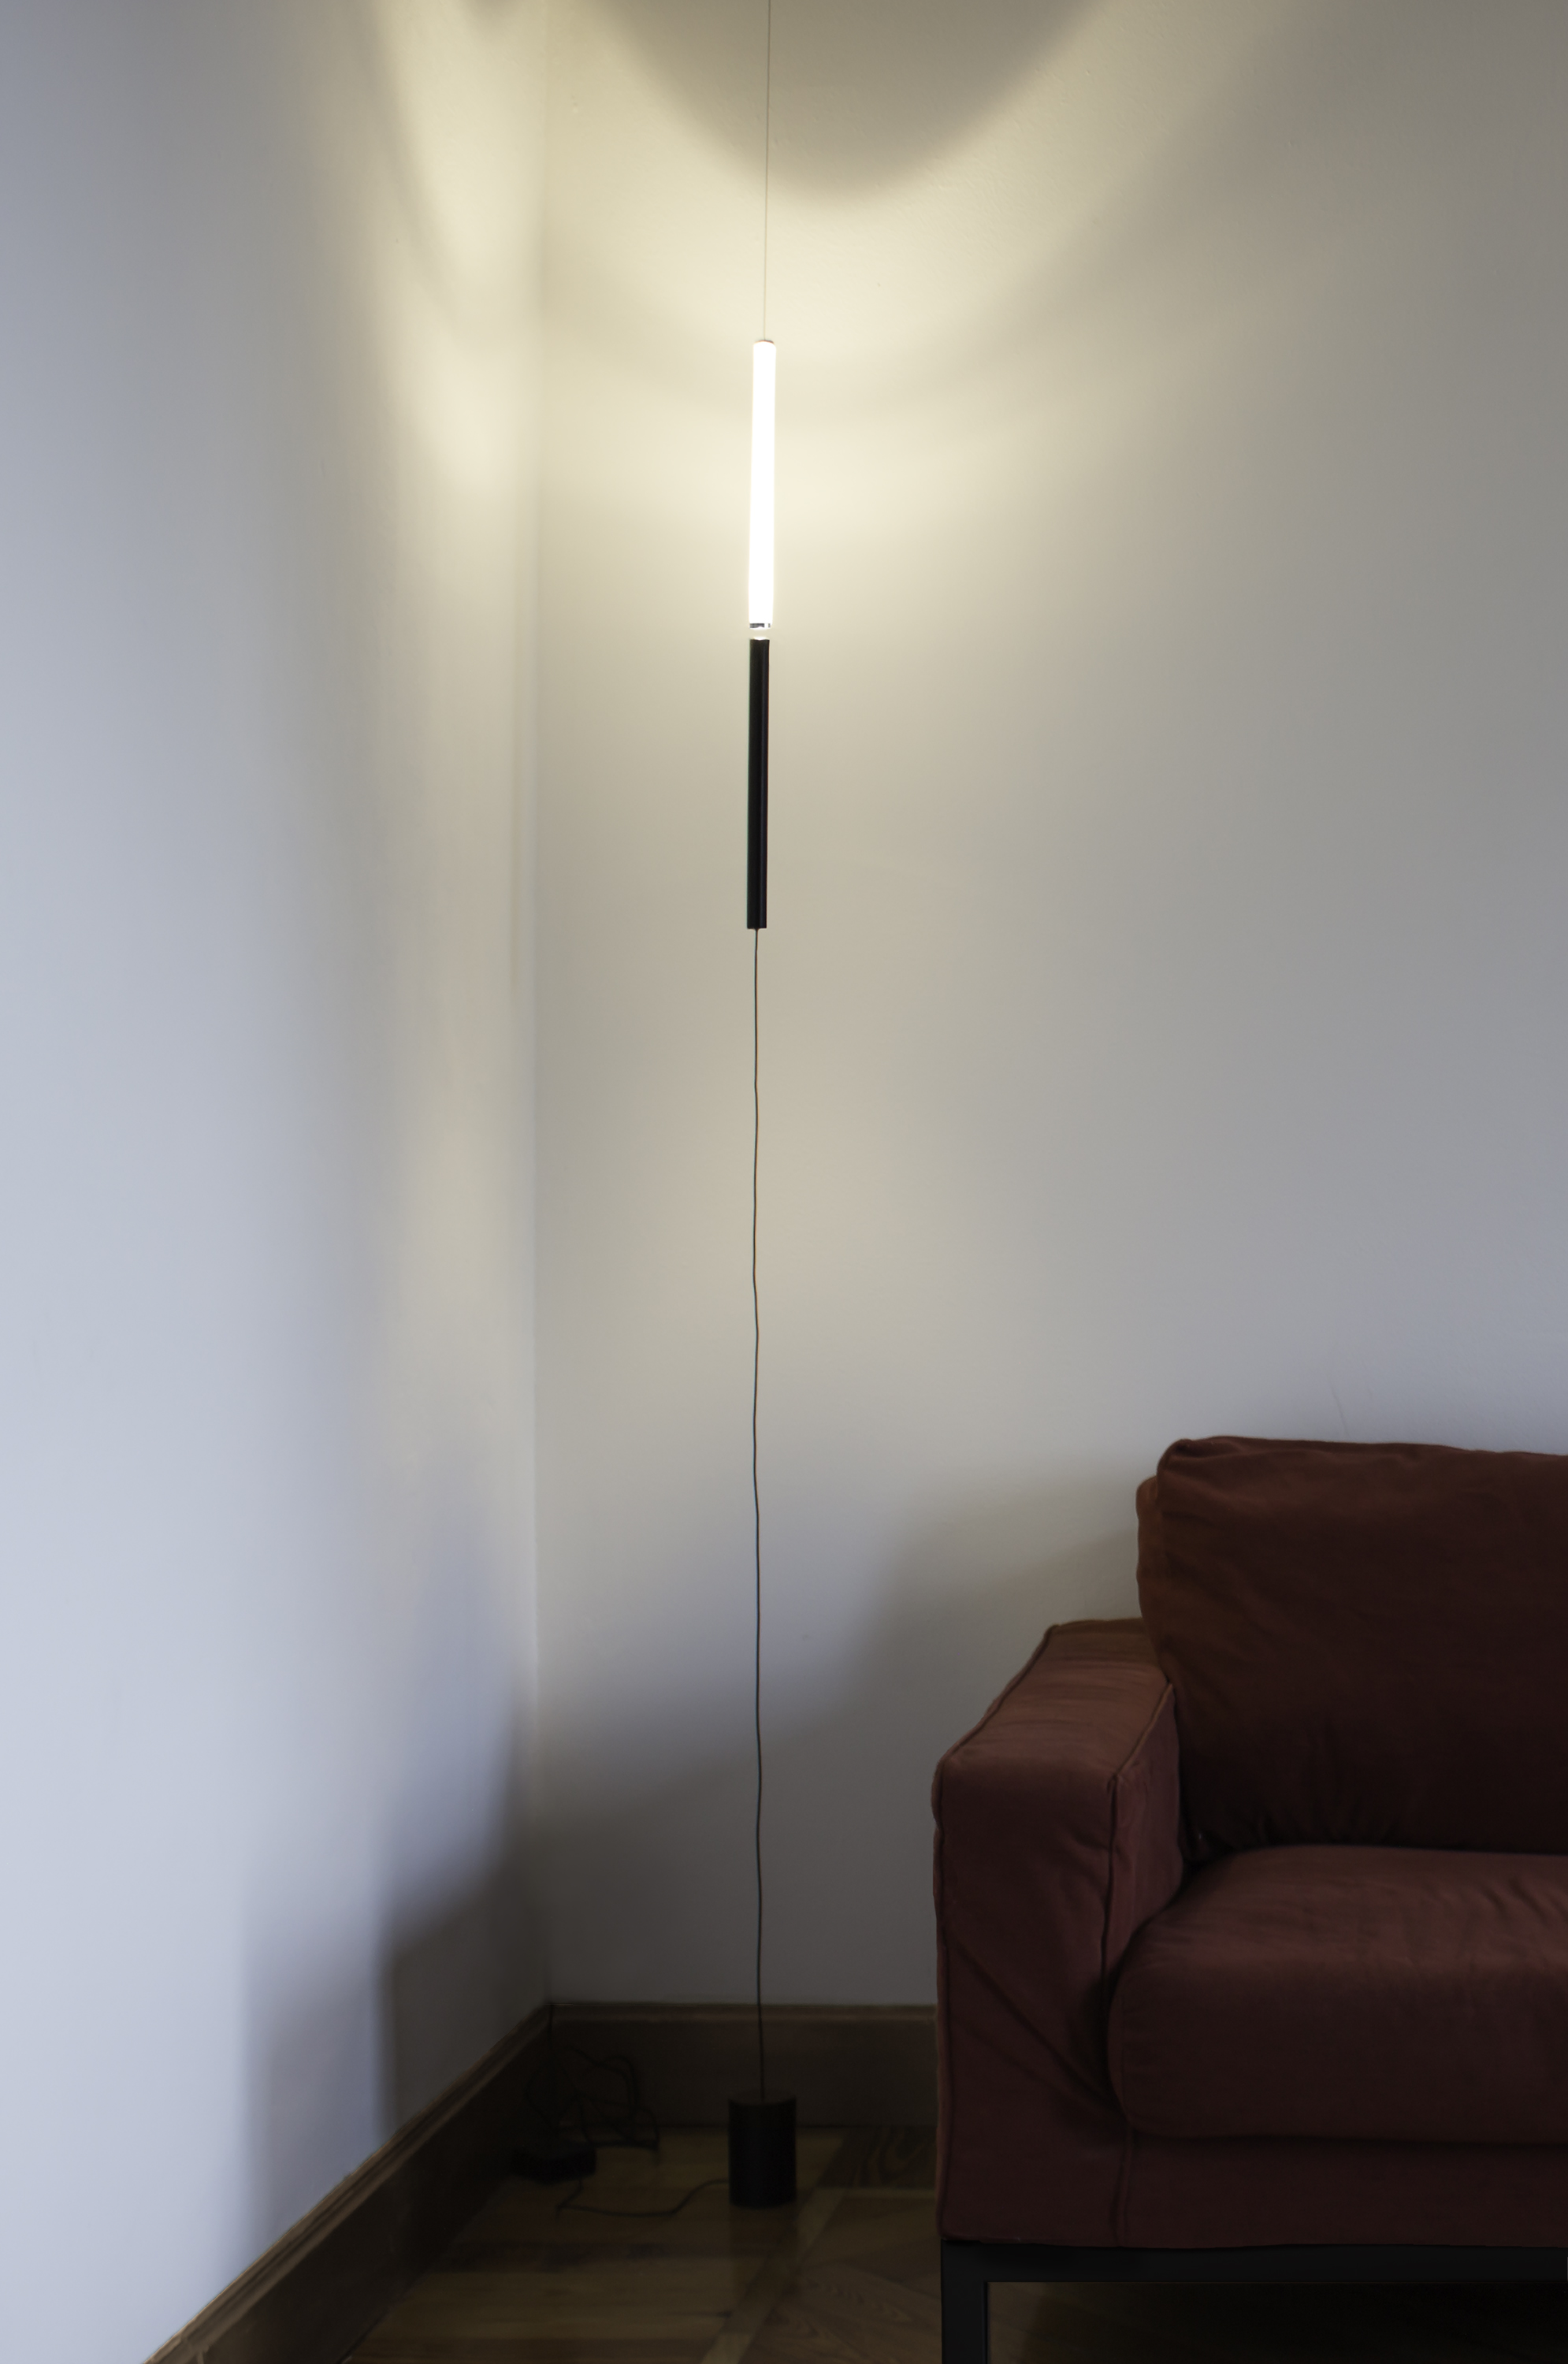 Equilibrio Floor Lamp - <p>We live inside a Universe where everything that matters is kept together by few fundamental forces in a continuously floating state of equilibrium. The existence of the cosmic equilibrium has always been considered a fascinating phenomenon of compensation. EQUILIBRIO lamp is based on the same phenomenon : the balance between gravity and magnetic force.</p> <p>EQUILIBRIO is a lamp with no structure. When the two ends of the lamp are close, the magnetic force in between them becomes strong enough to challenge gravity, letting the lamp magically float in the air. <br />Thanks to its design, EQUILIBRIO can have a more diffused light when the two ends of the lamp are perfectly aligned, allowing the light to spread from the bottom to the top part. Breaking the balance by taking the lower part, the light source can be used as a direct light.</p>  | Matter of Stuff